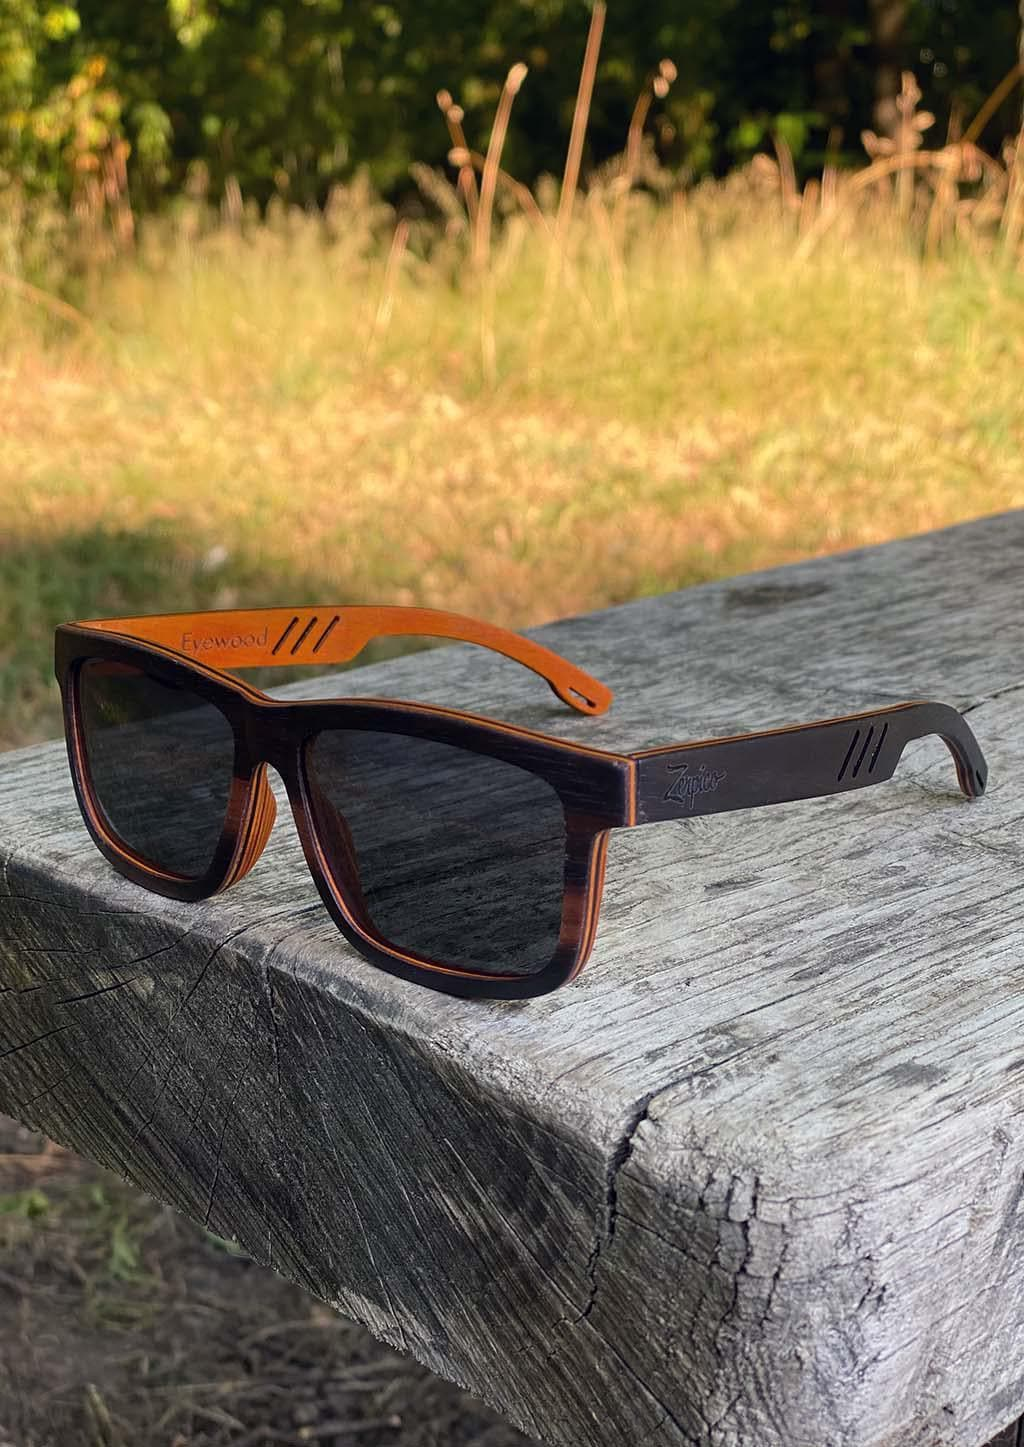 Handmade wooden wayfarers in wood and are guaranteed to give you a natural feeling of comfort and design.  Duriel is a full wooden model so all made in beautiful wood. This special edition pair is made to stand out. Shoot from outside in the sun in Sweden.